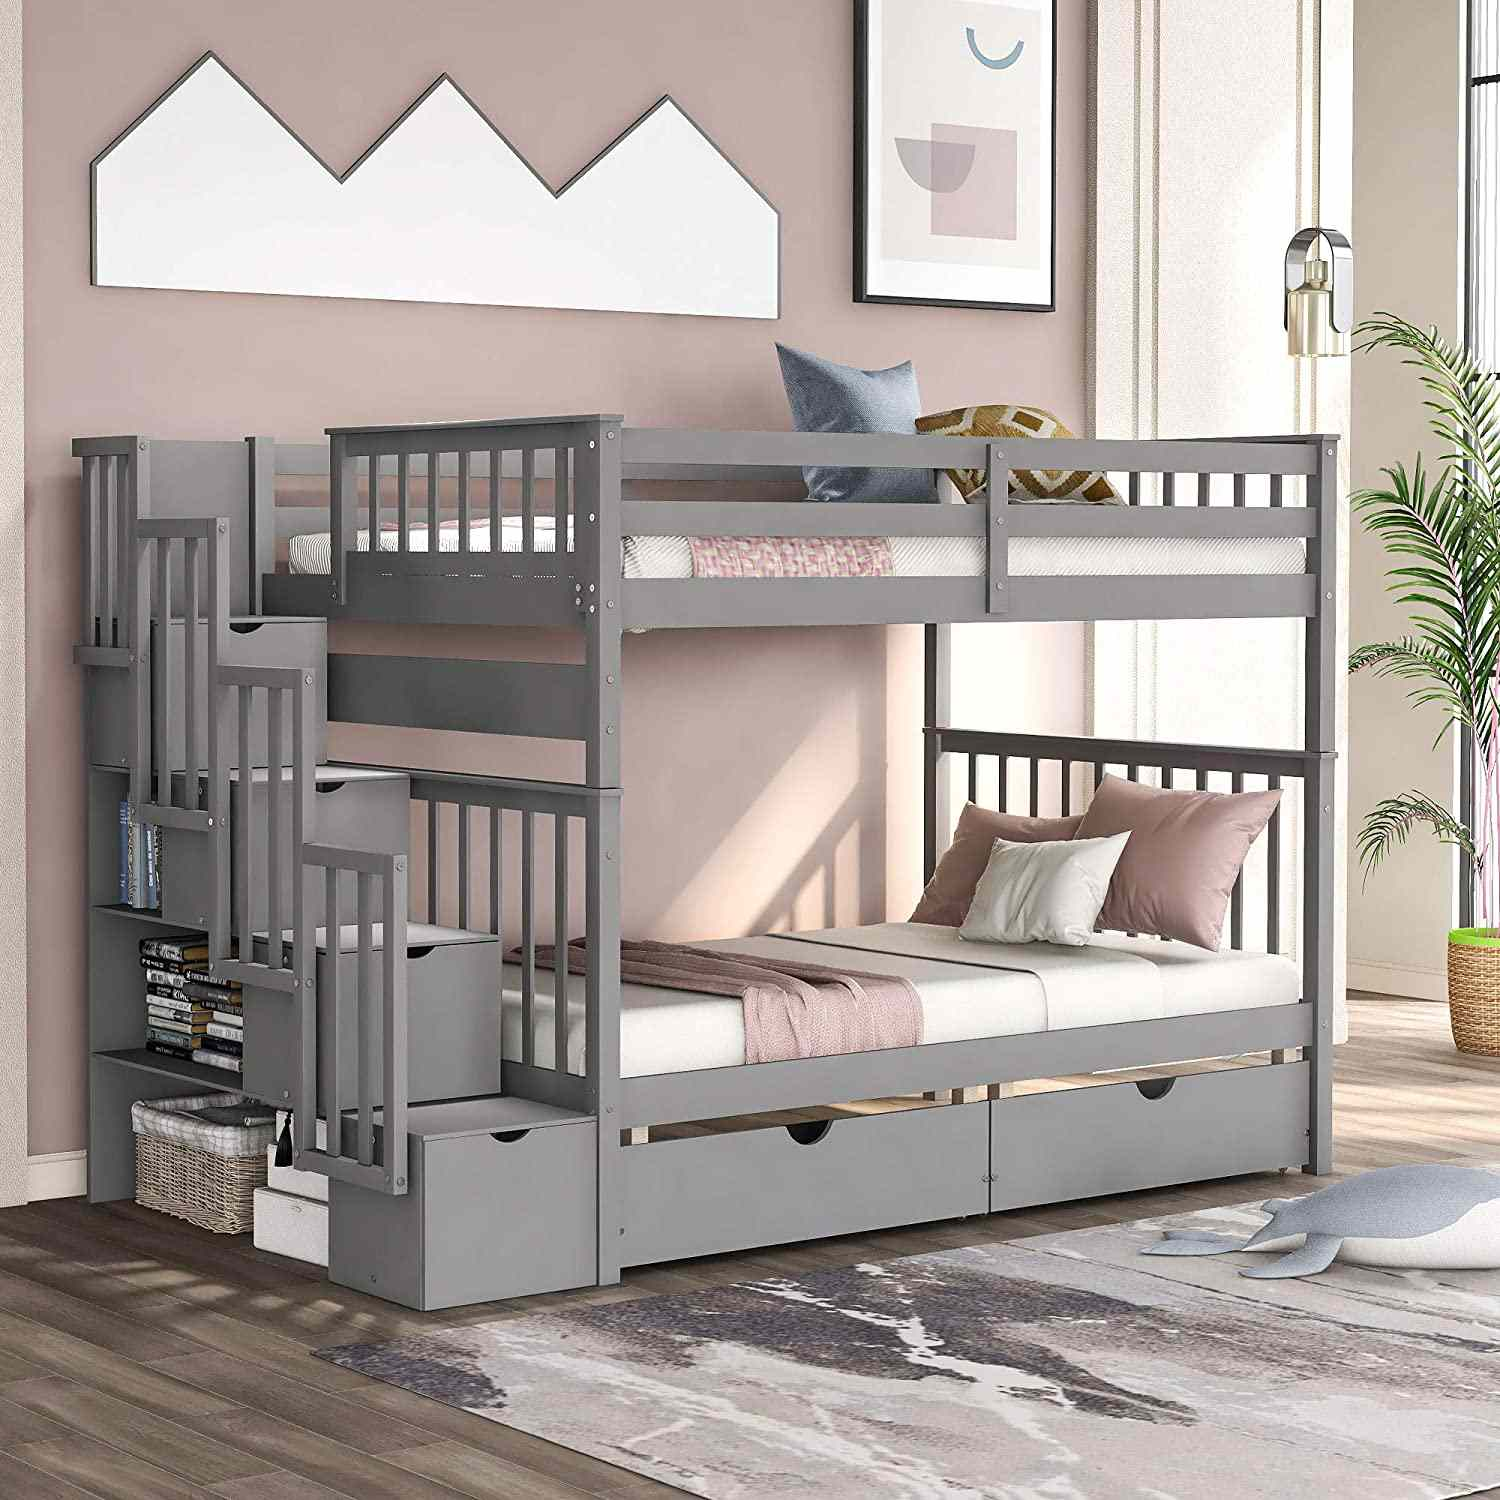 wooden beds for kids